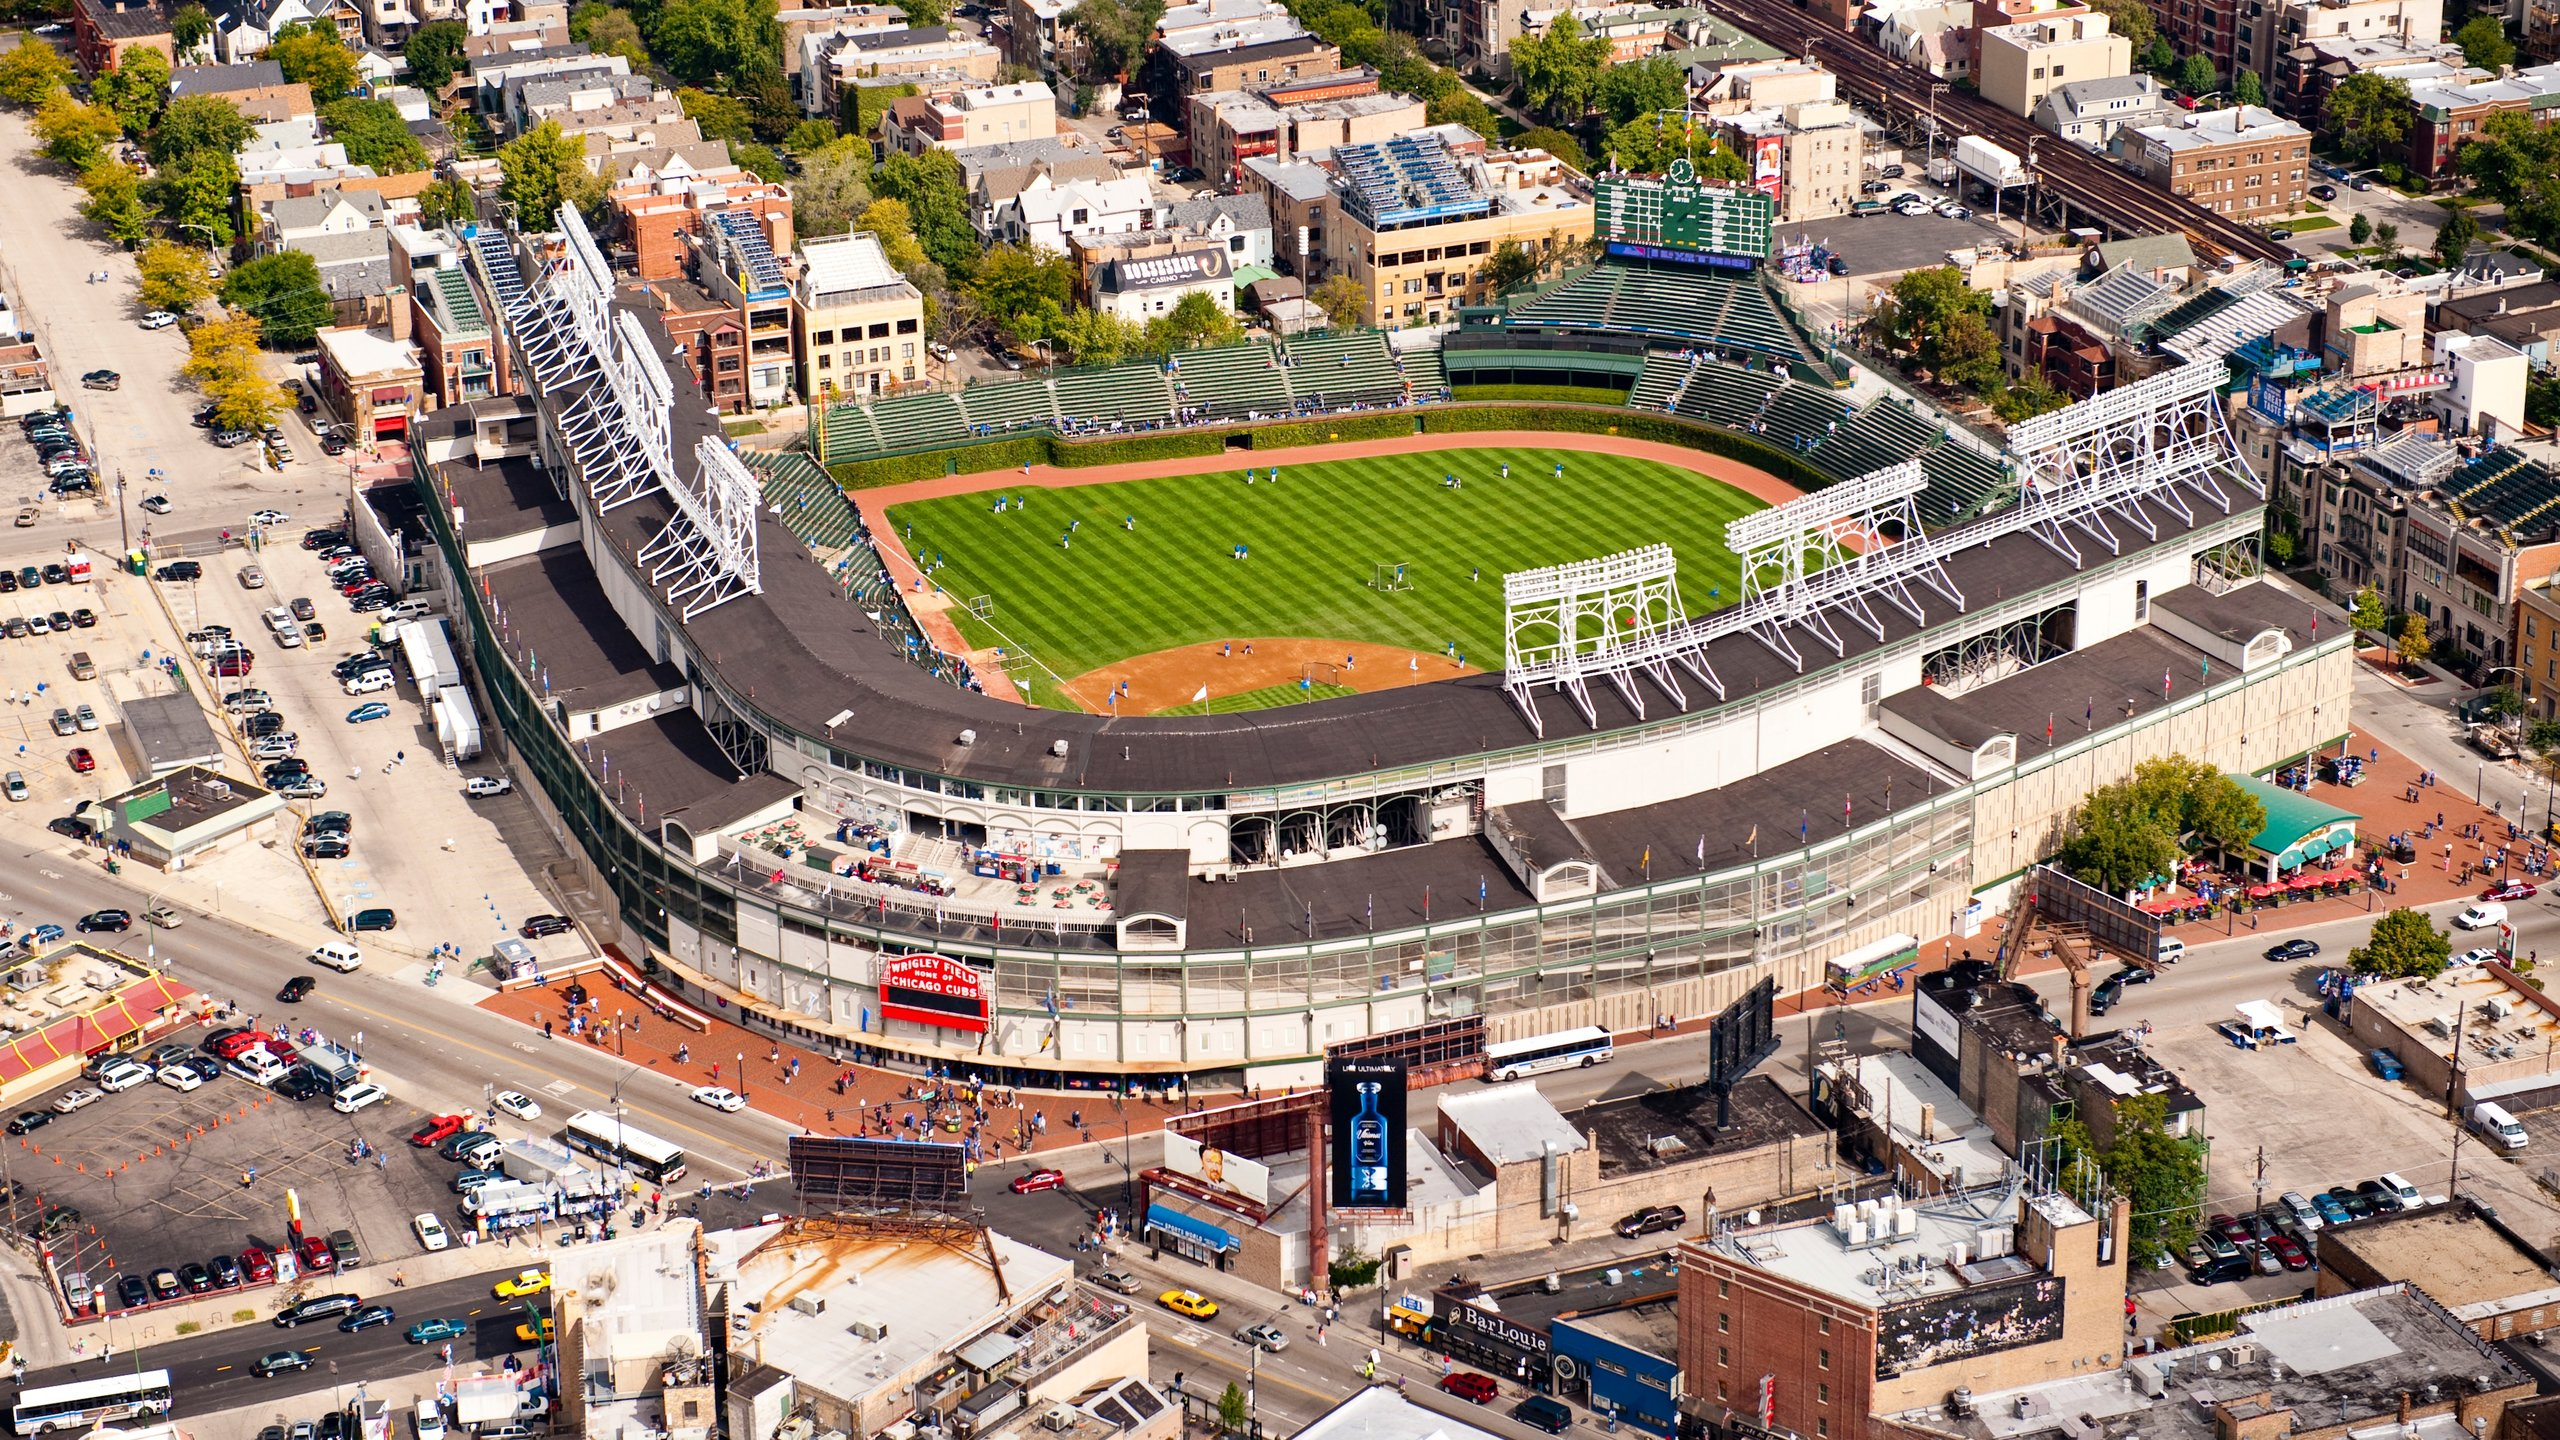 Tour the iconic grounds and catch a game March through September at Chicago's beloved baseball stadium.